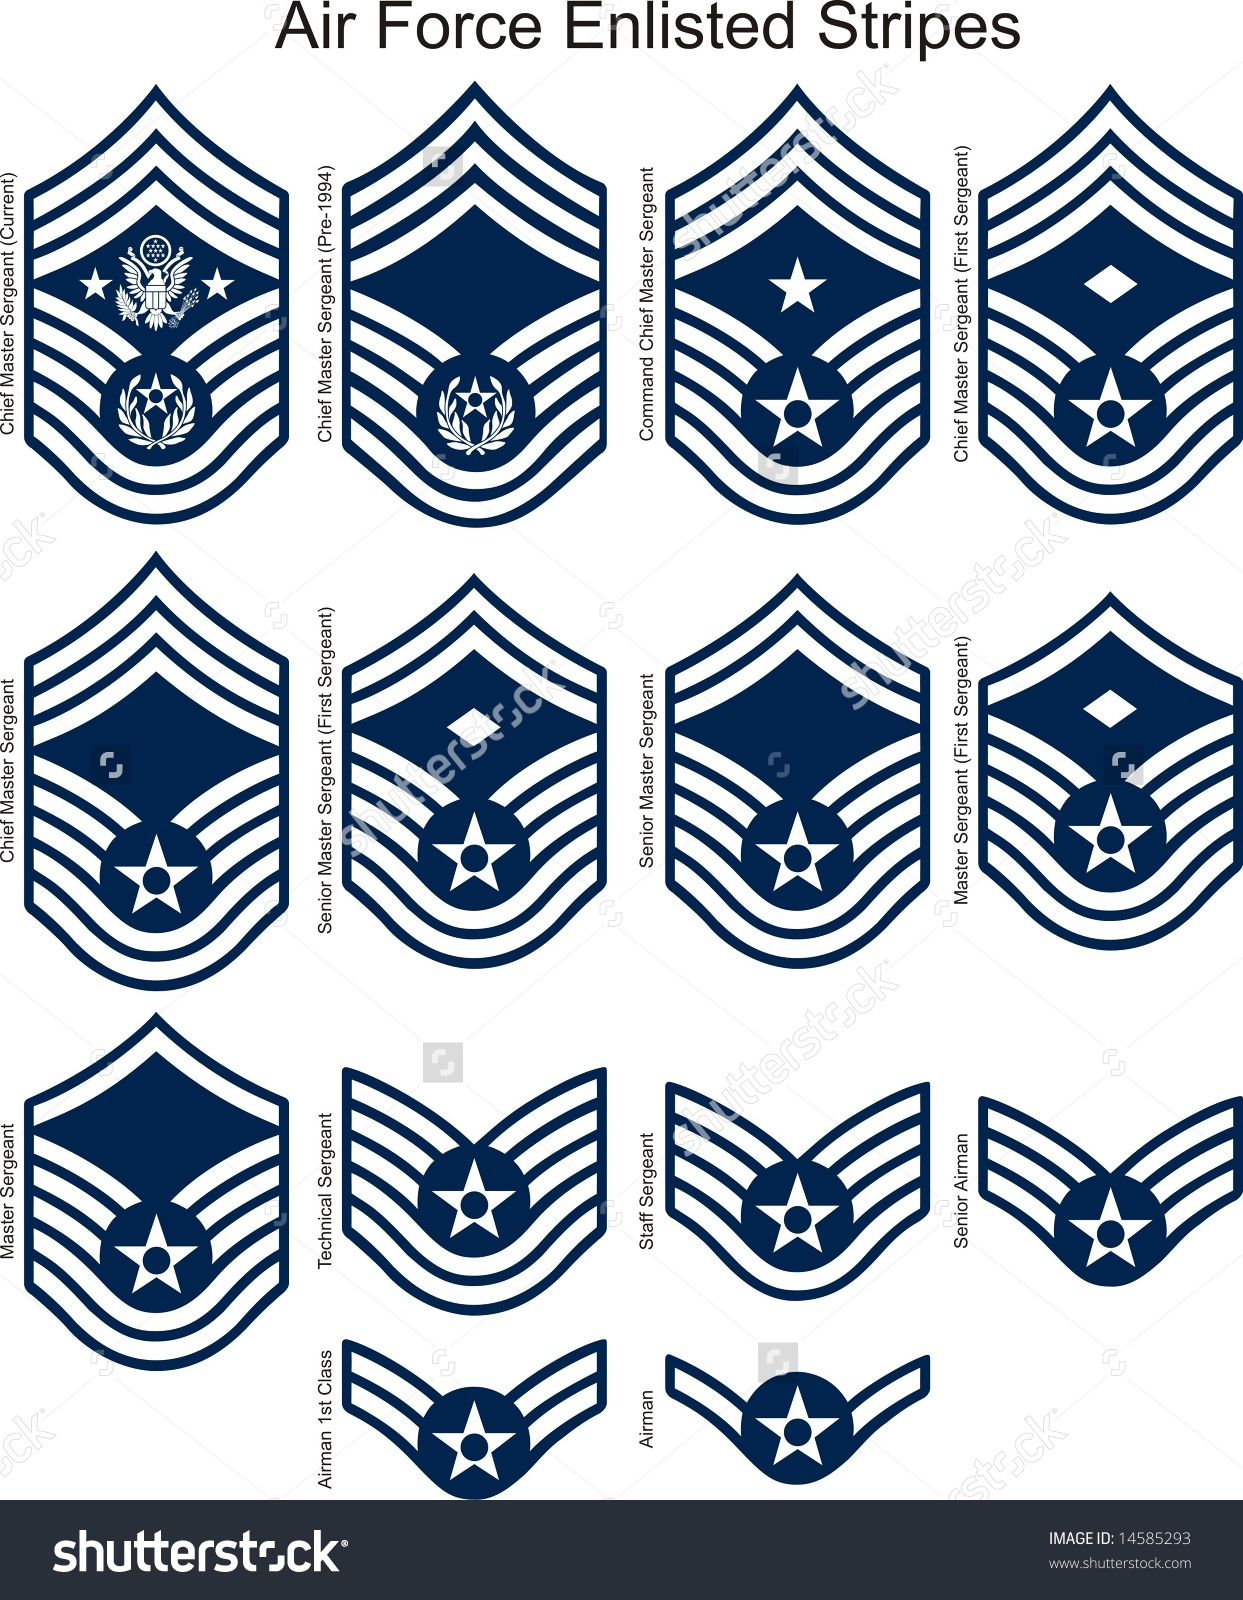 Air force master sargeant clipart PNG and cliparts for Free Download.